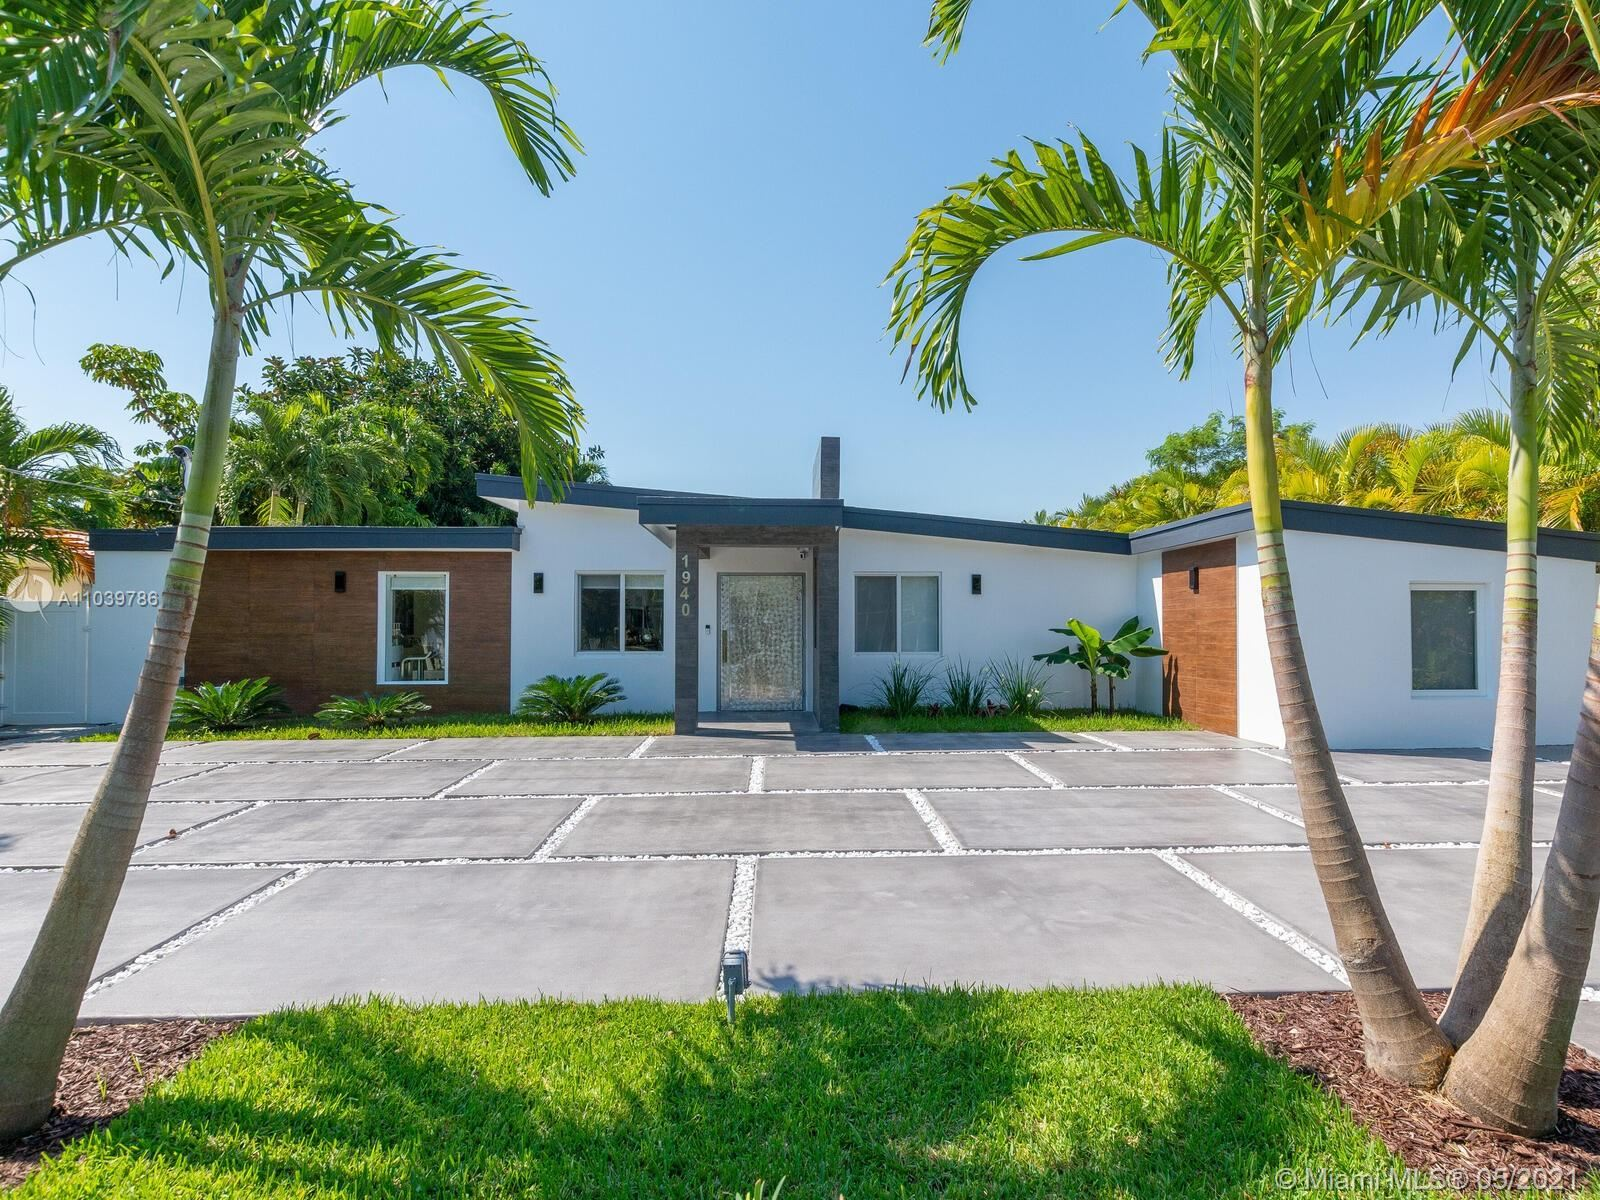 Photo of 1940 N Hibiscus Dr, North Miami, FL 33181 (MLS # A11039786)